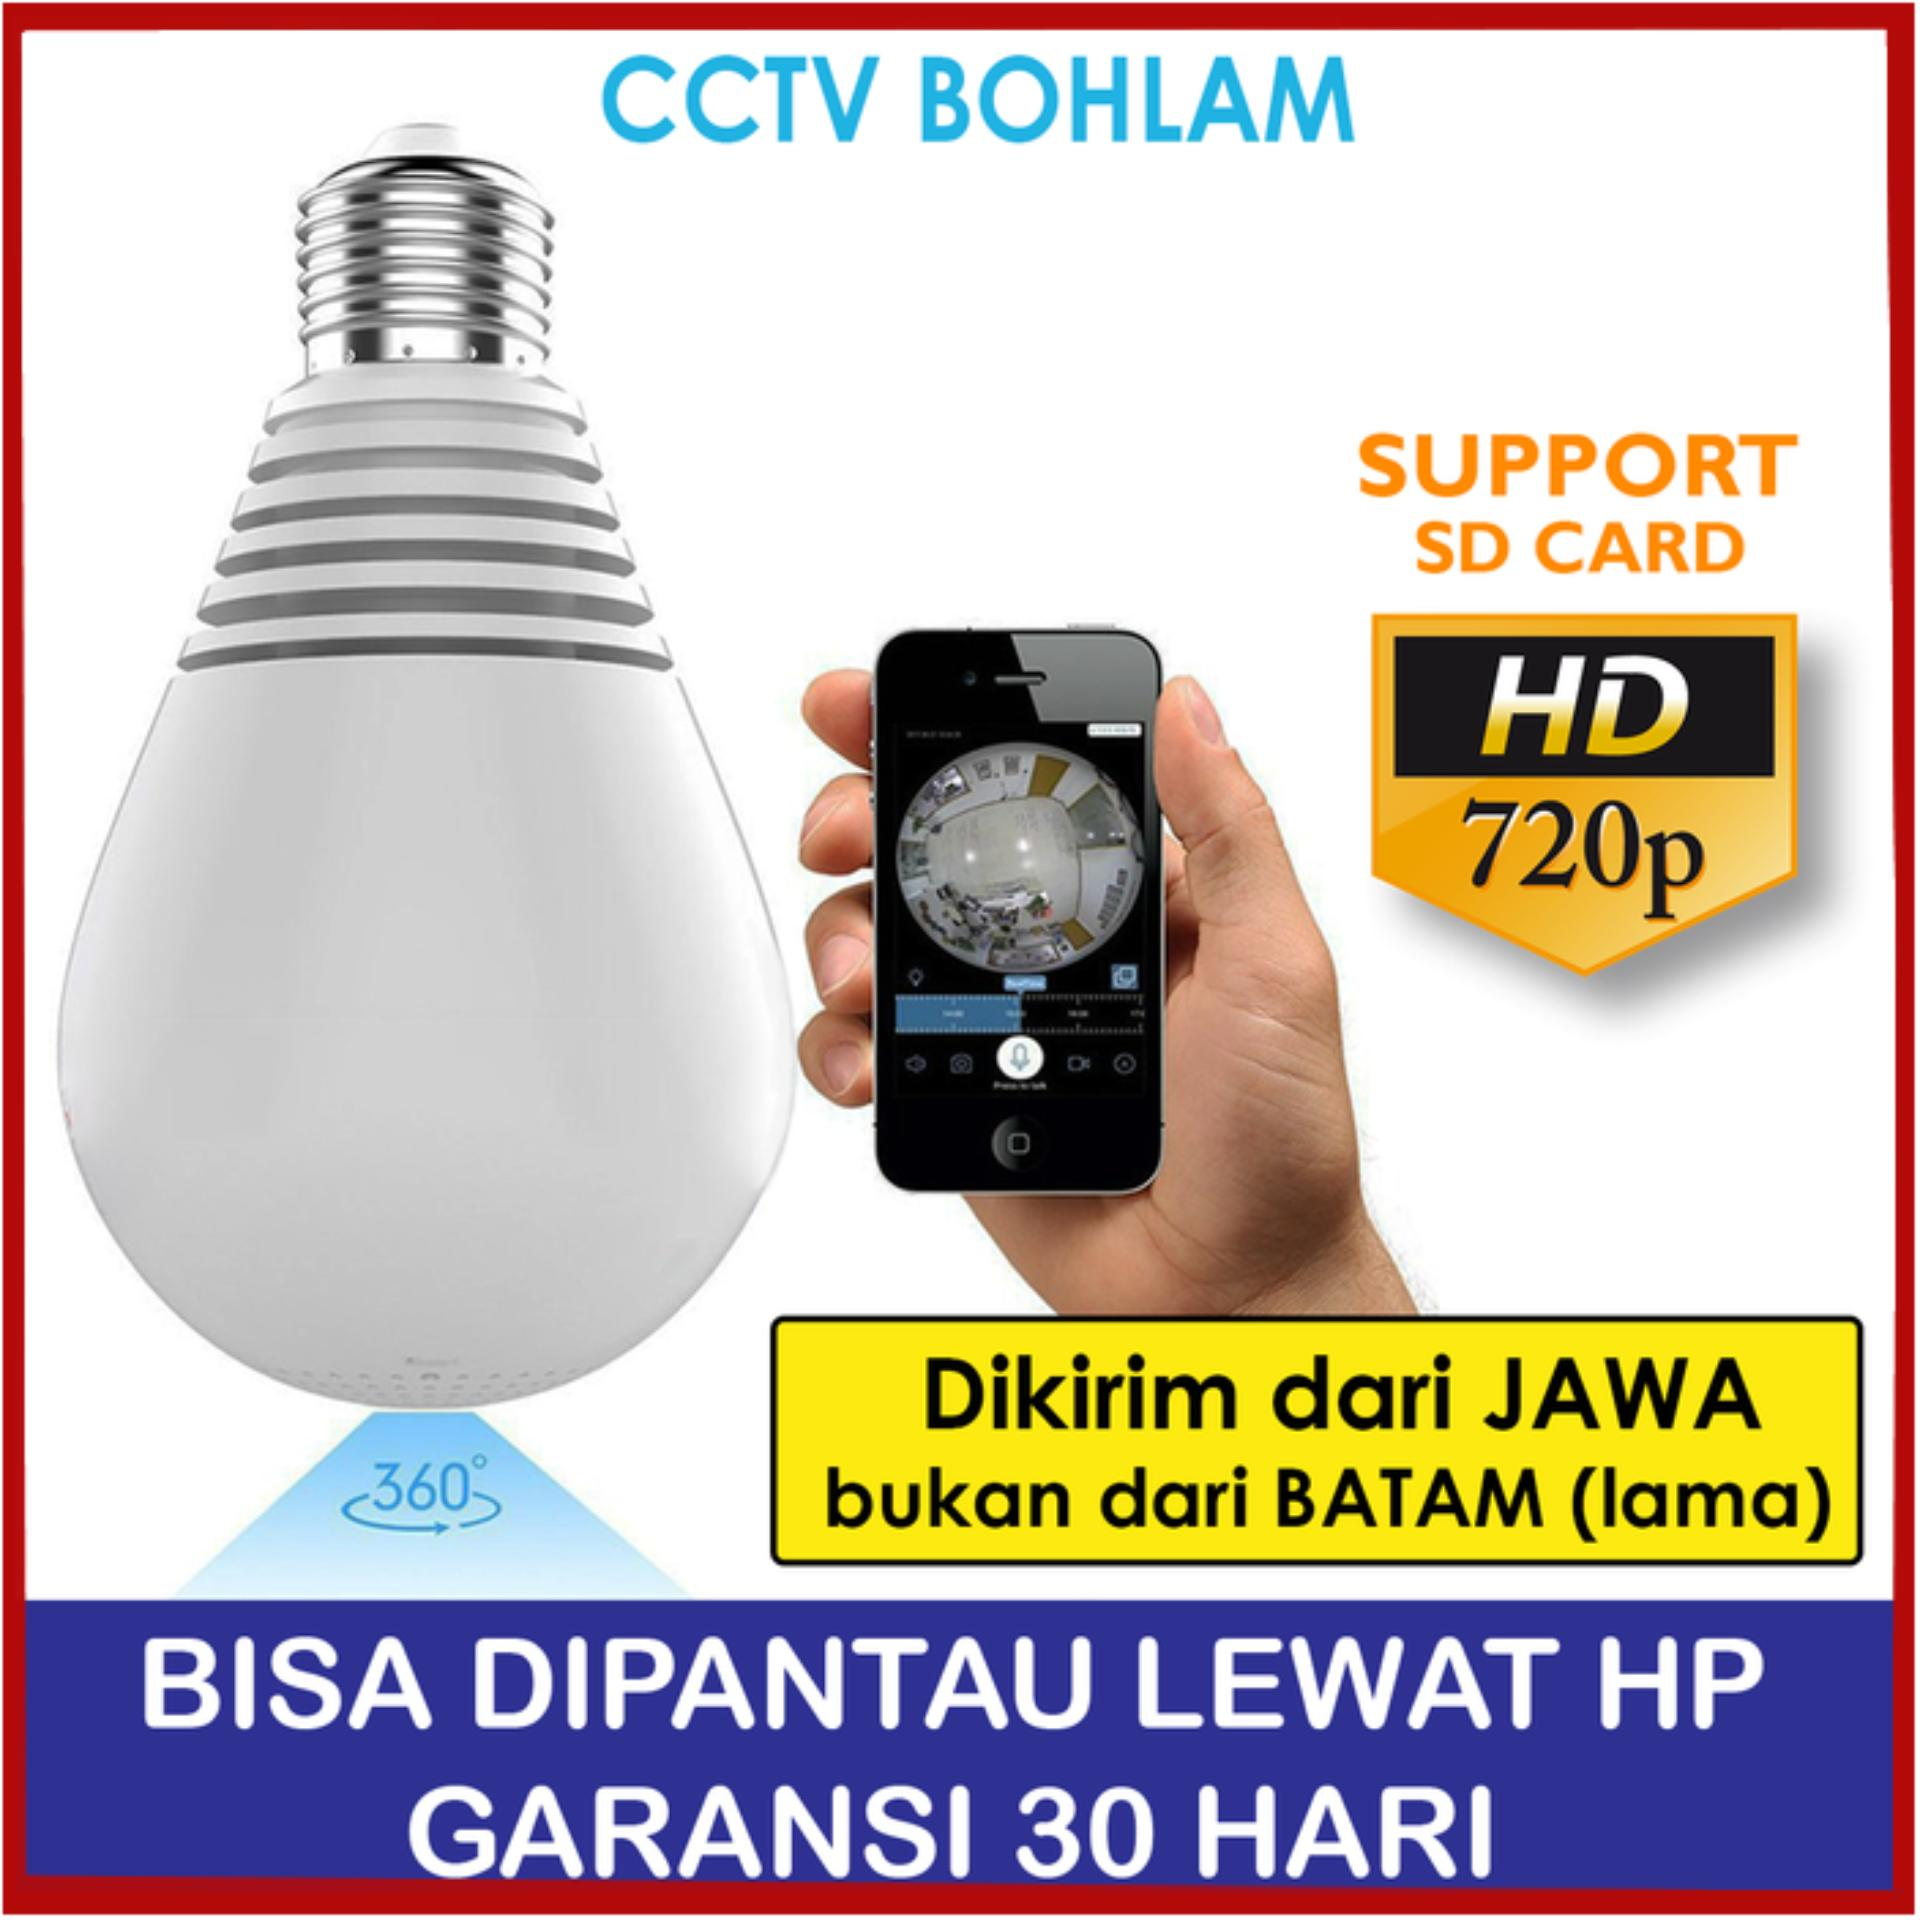 V1 SELALU ADA - IP Camera Cctv Wifi Bohlam Lampu 2Mp 1080P Panoramic 360